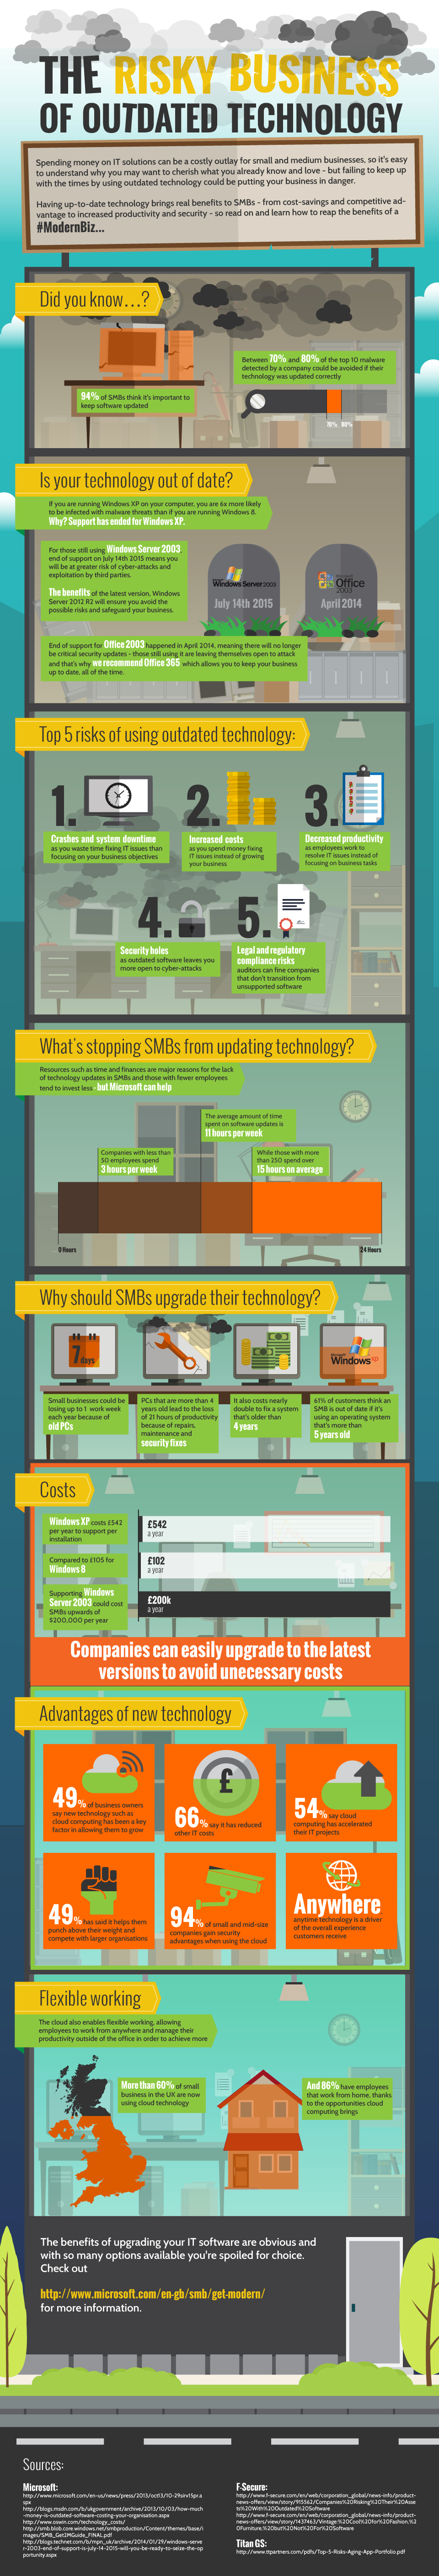 Risky Business of outdated Technology